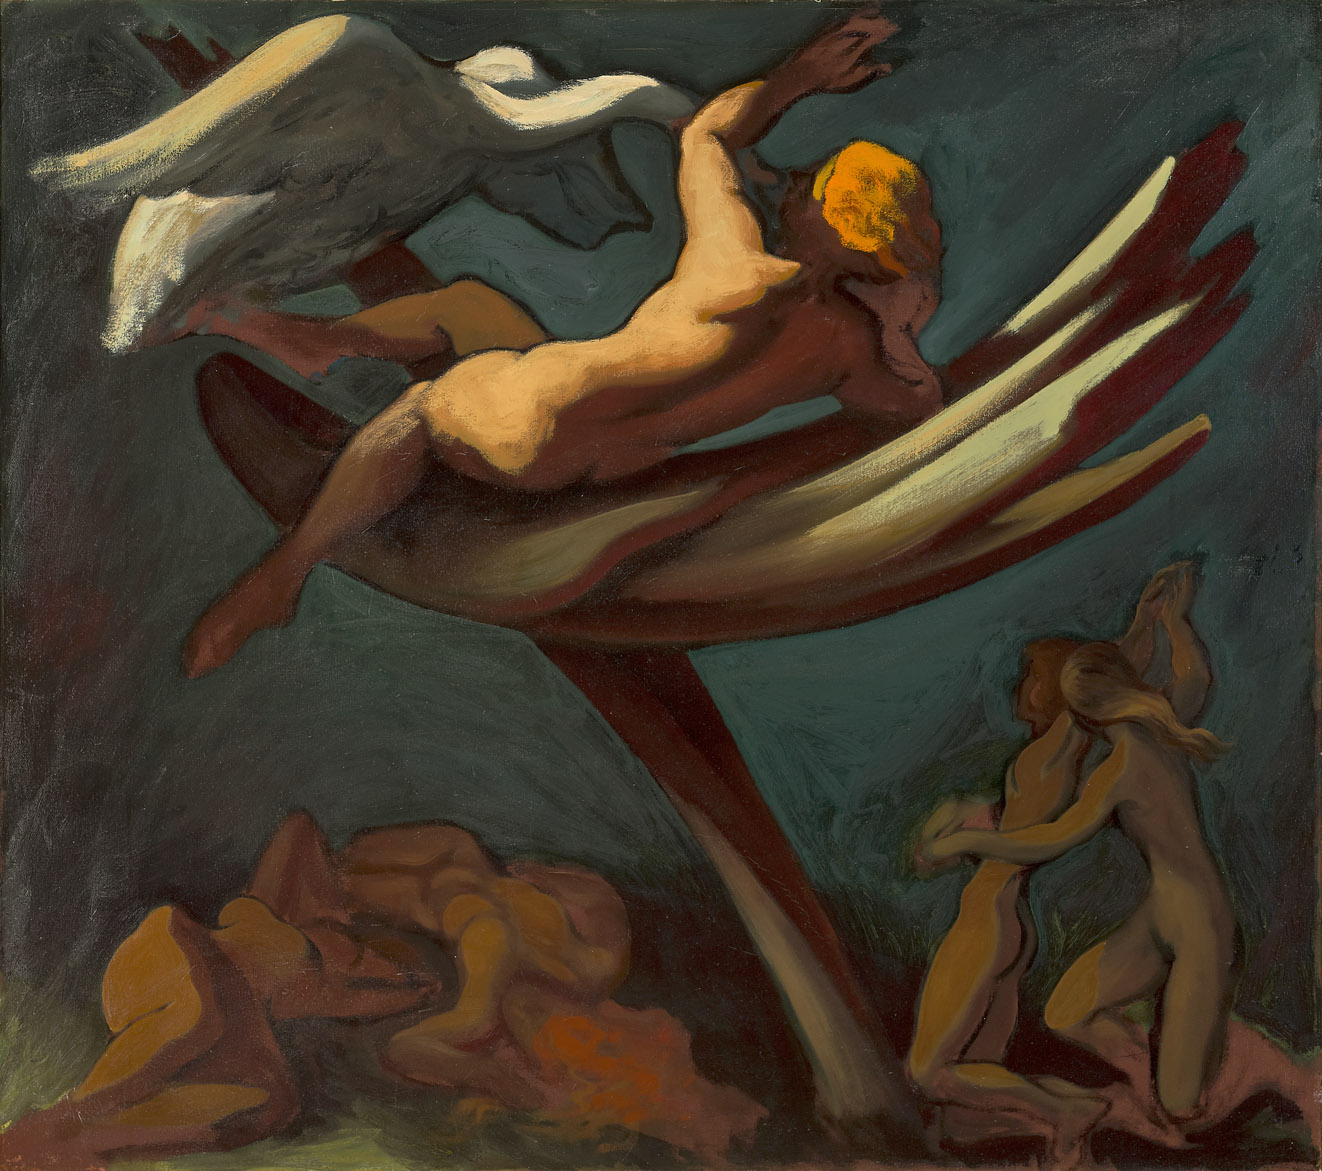 Leda , 1943  oil on canvas 36 x 40 inches; 91.4 x 101.6 centimeters